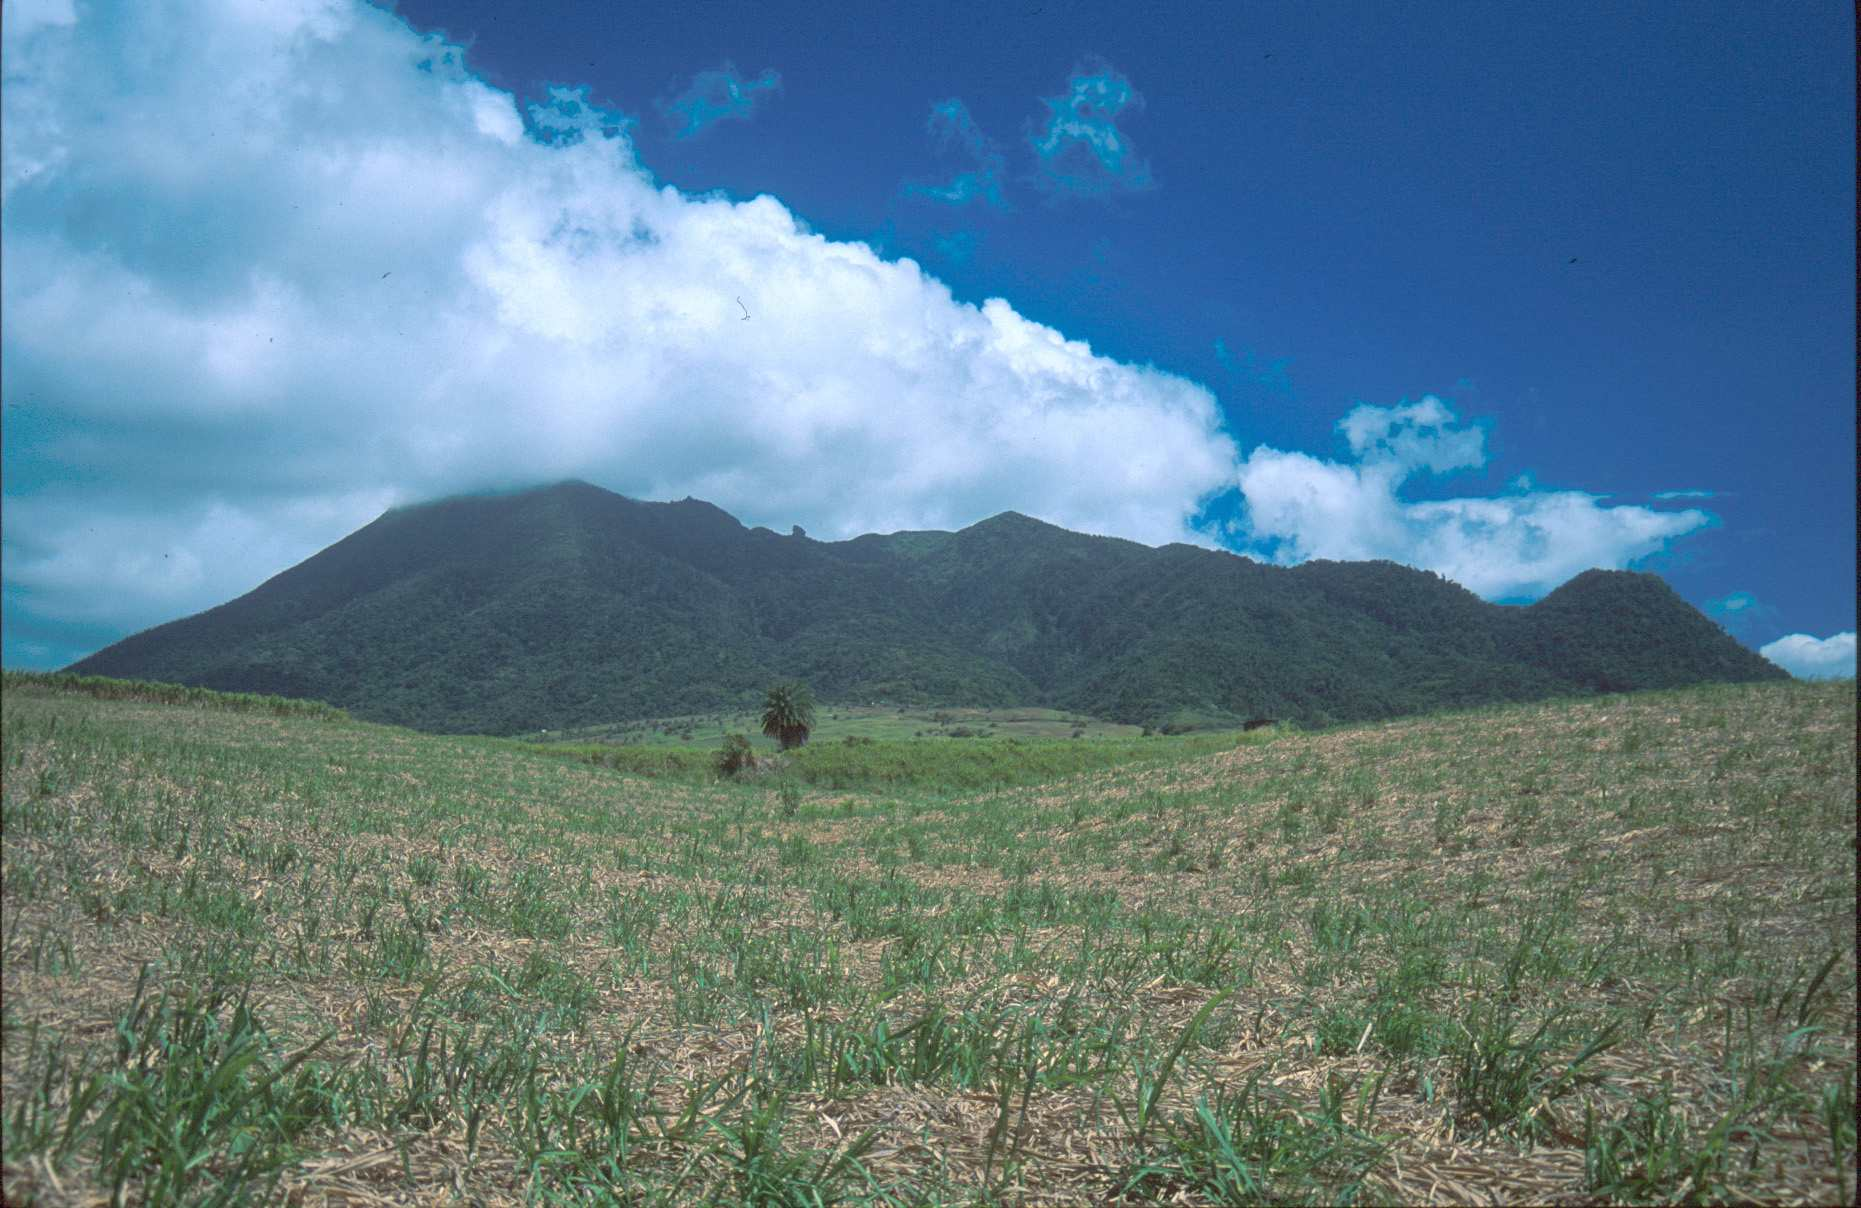 St. Kitts Volcanic Hazard Assessment